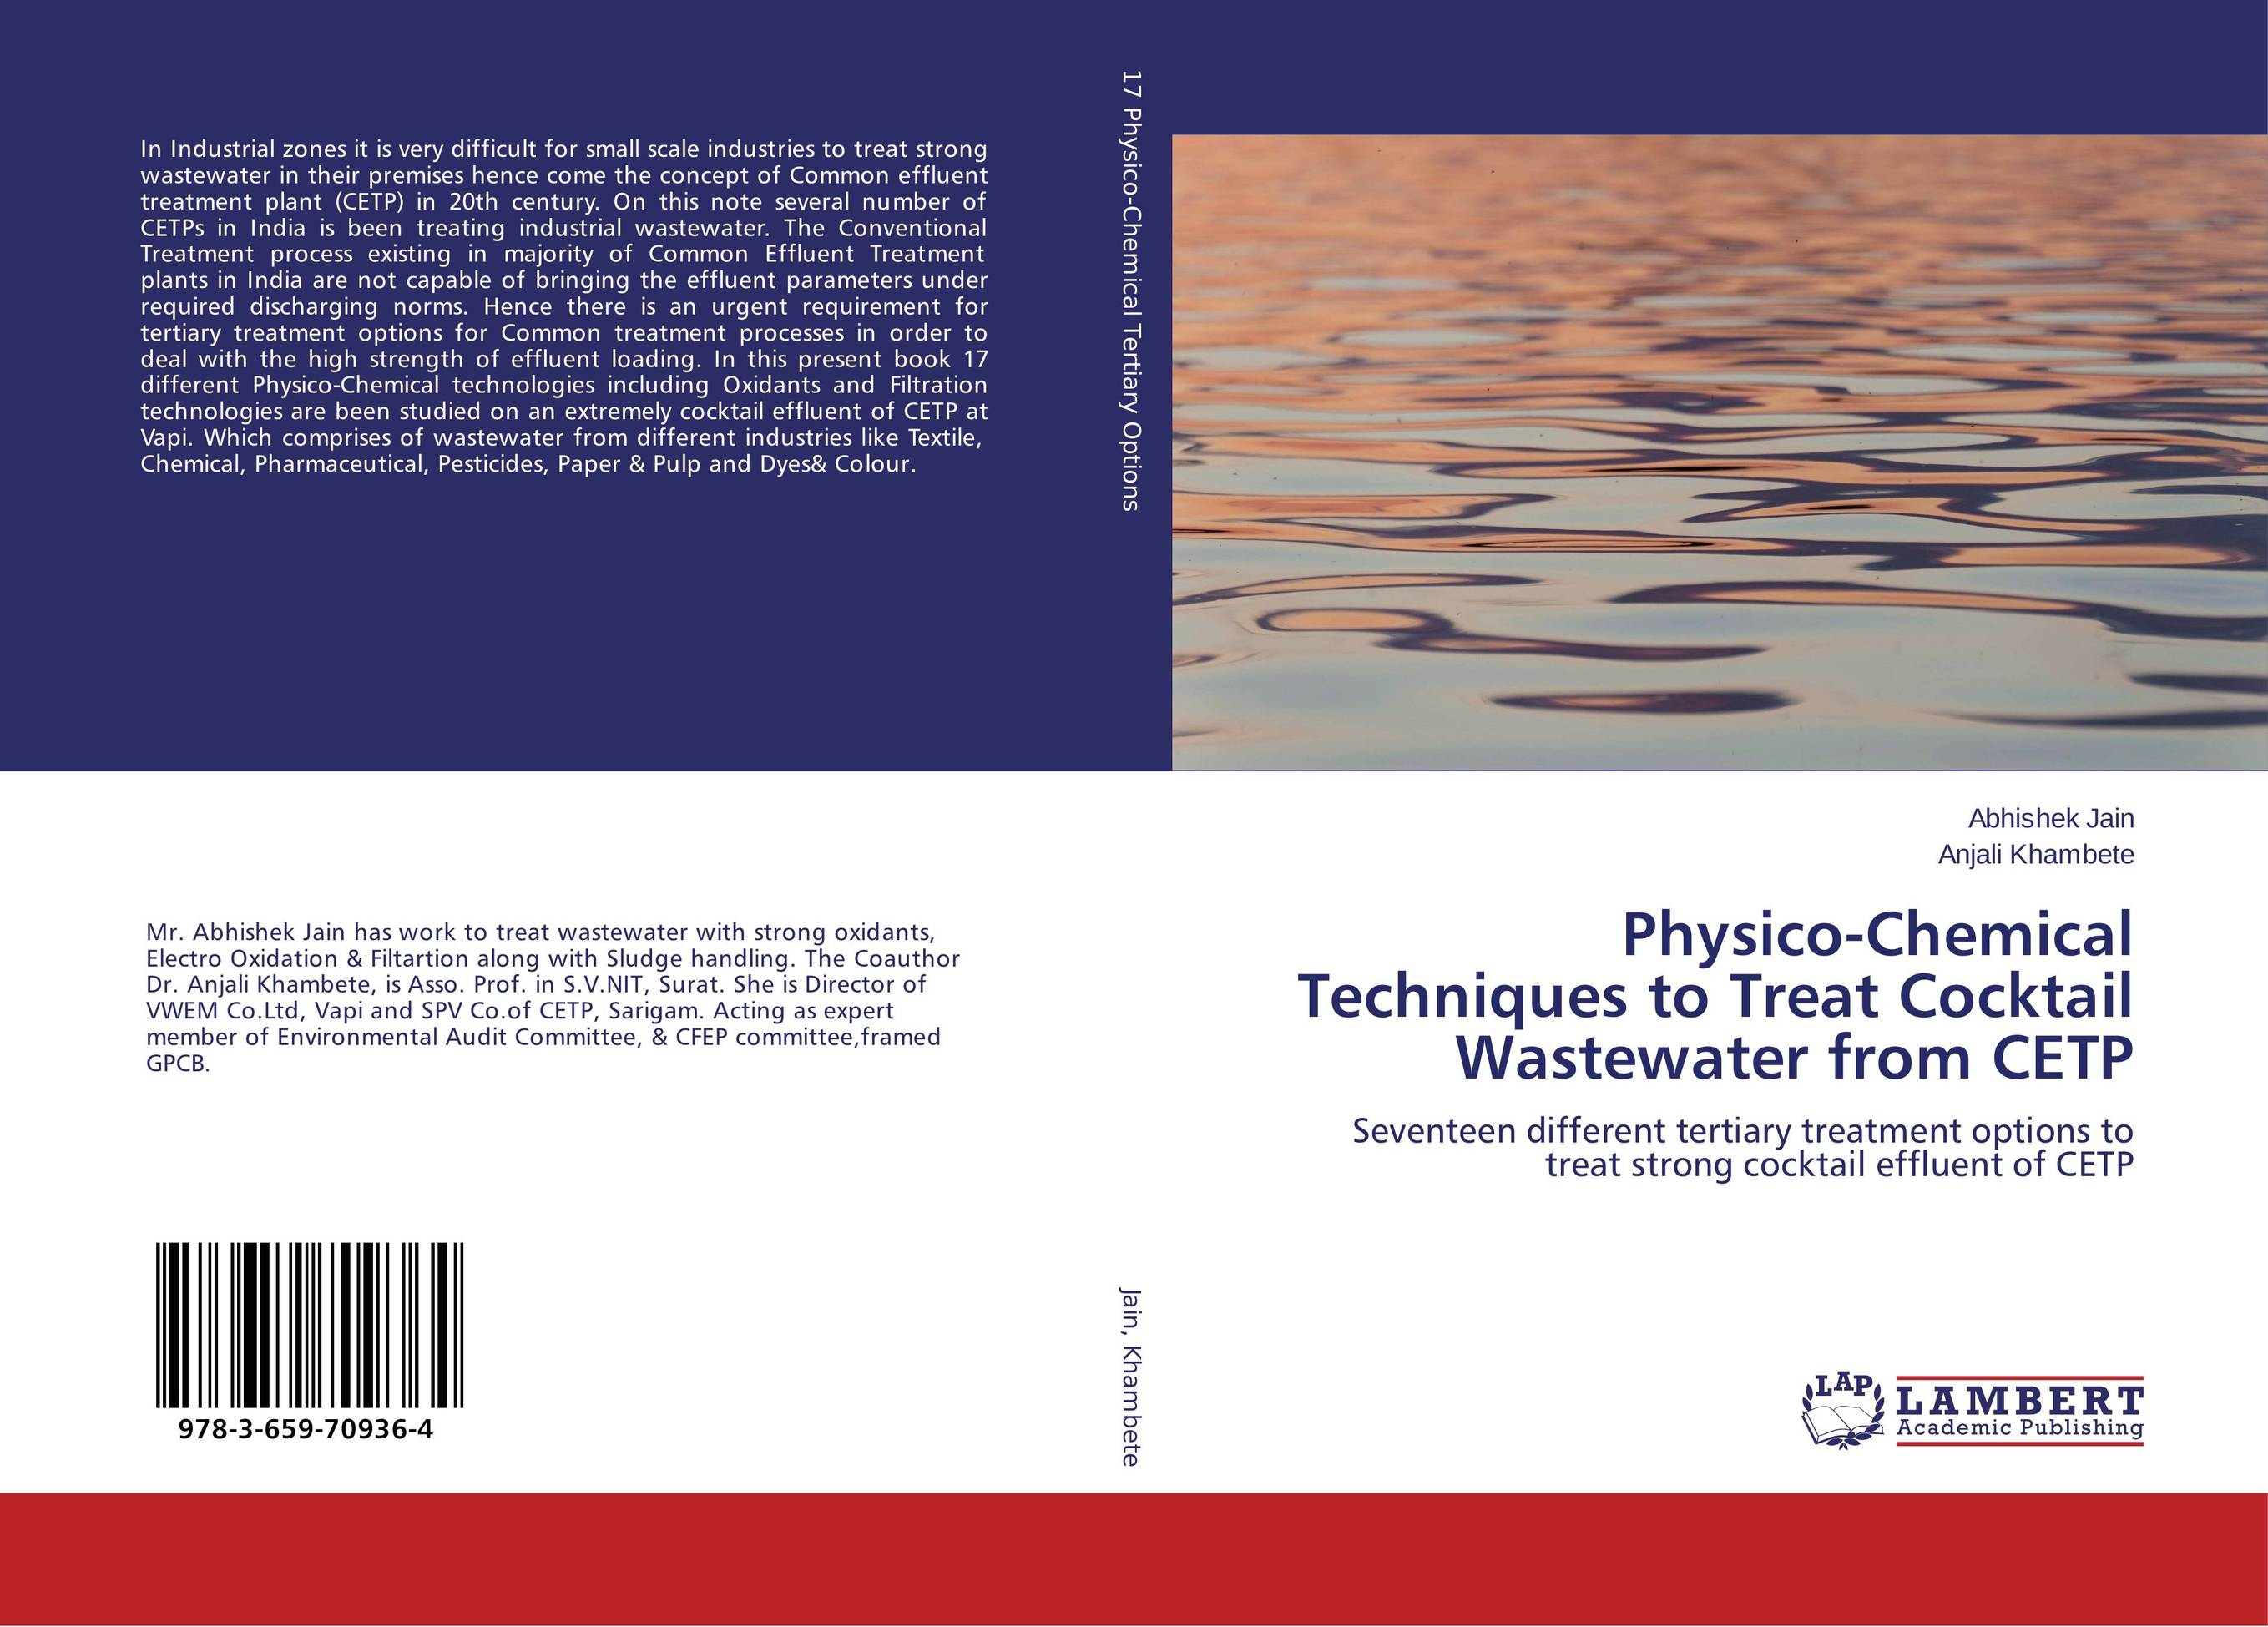 Physico-Chemical Techniques to Treat Cocktail Wastewater from CETP